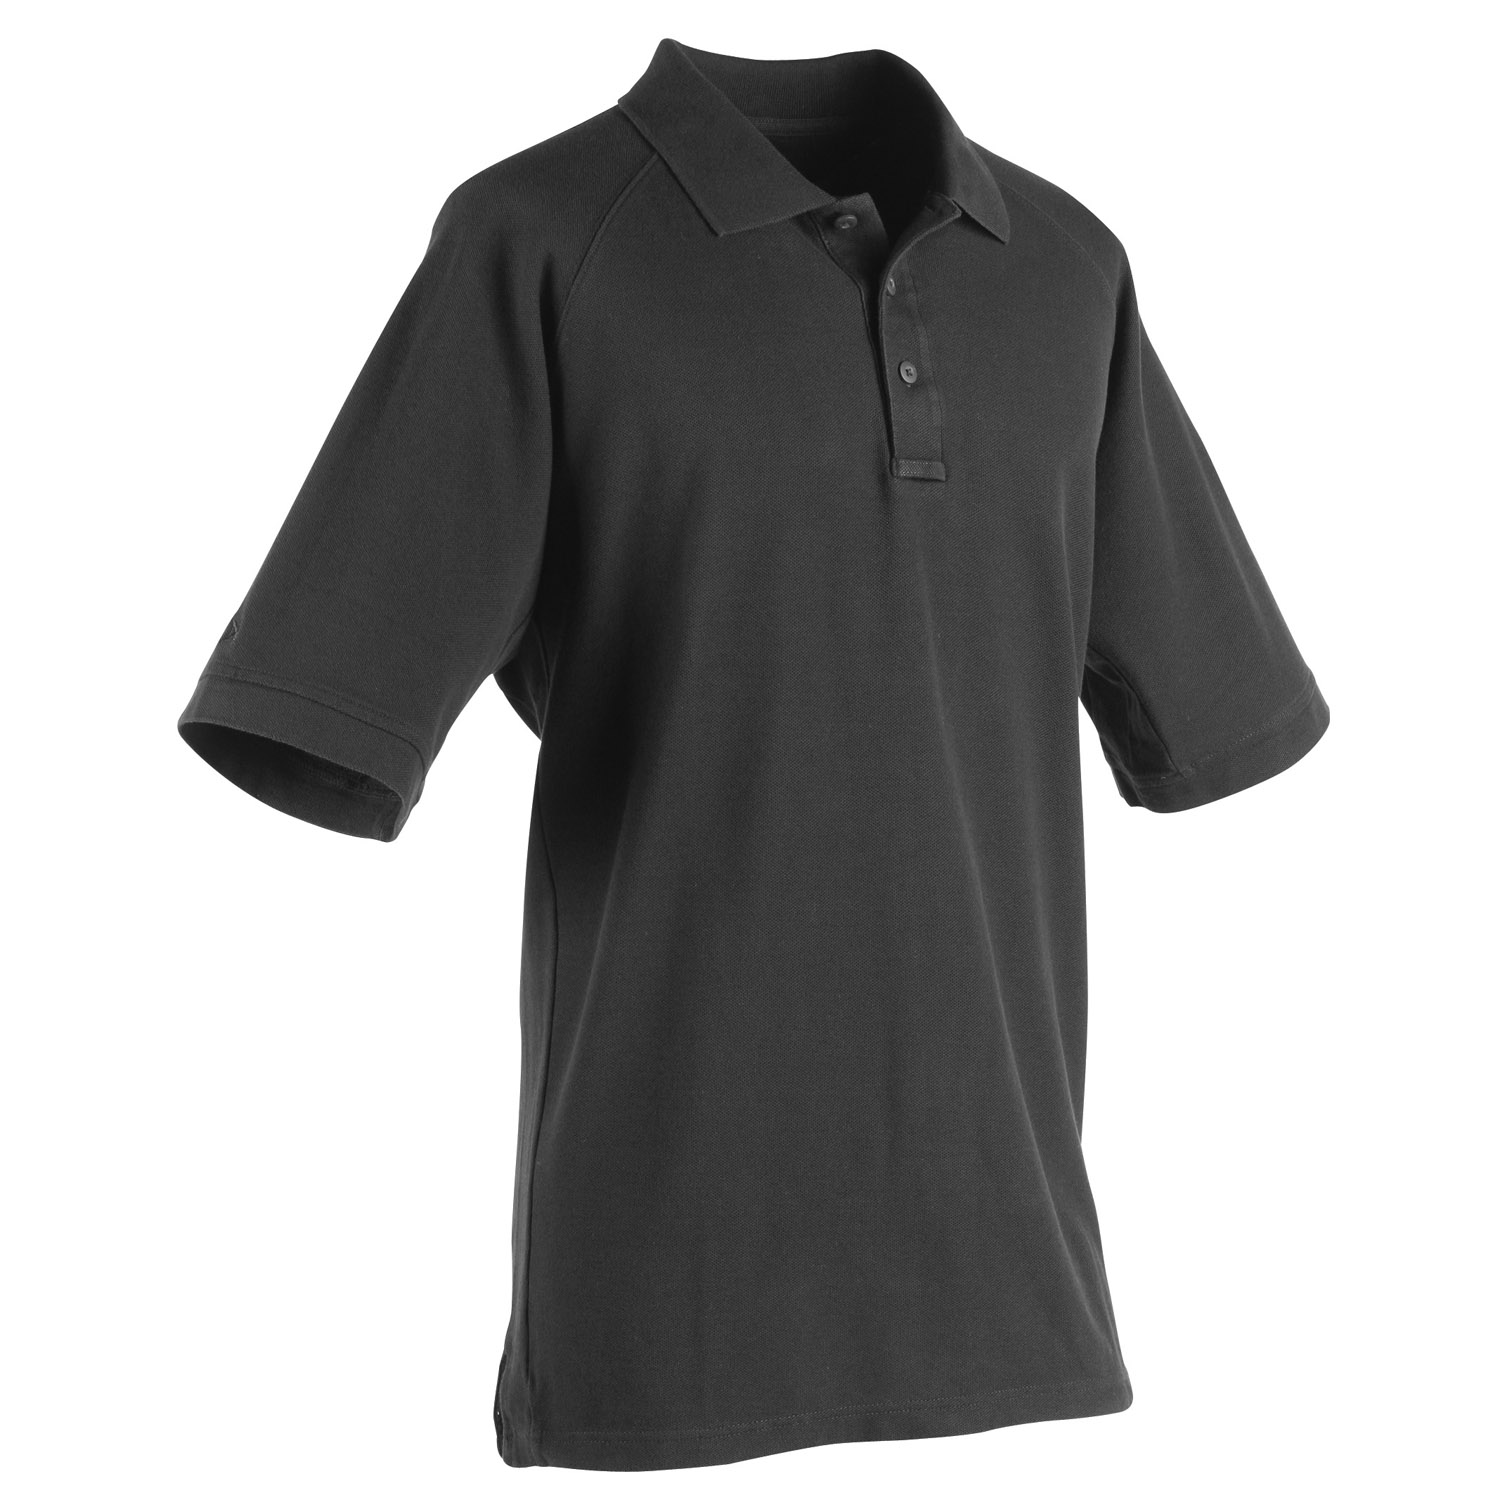 Vertx 100 Percent Cotton Short Sleeve Polo